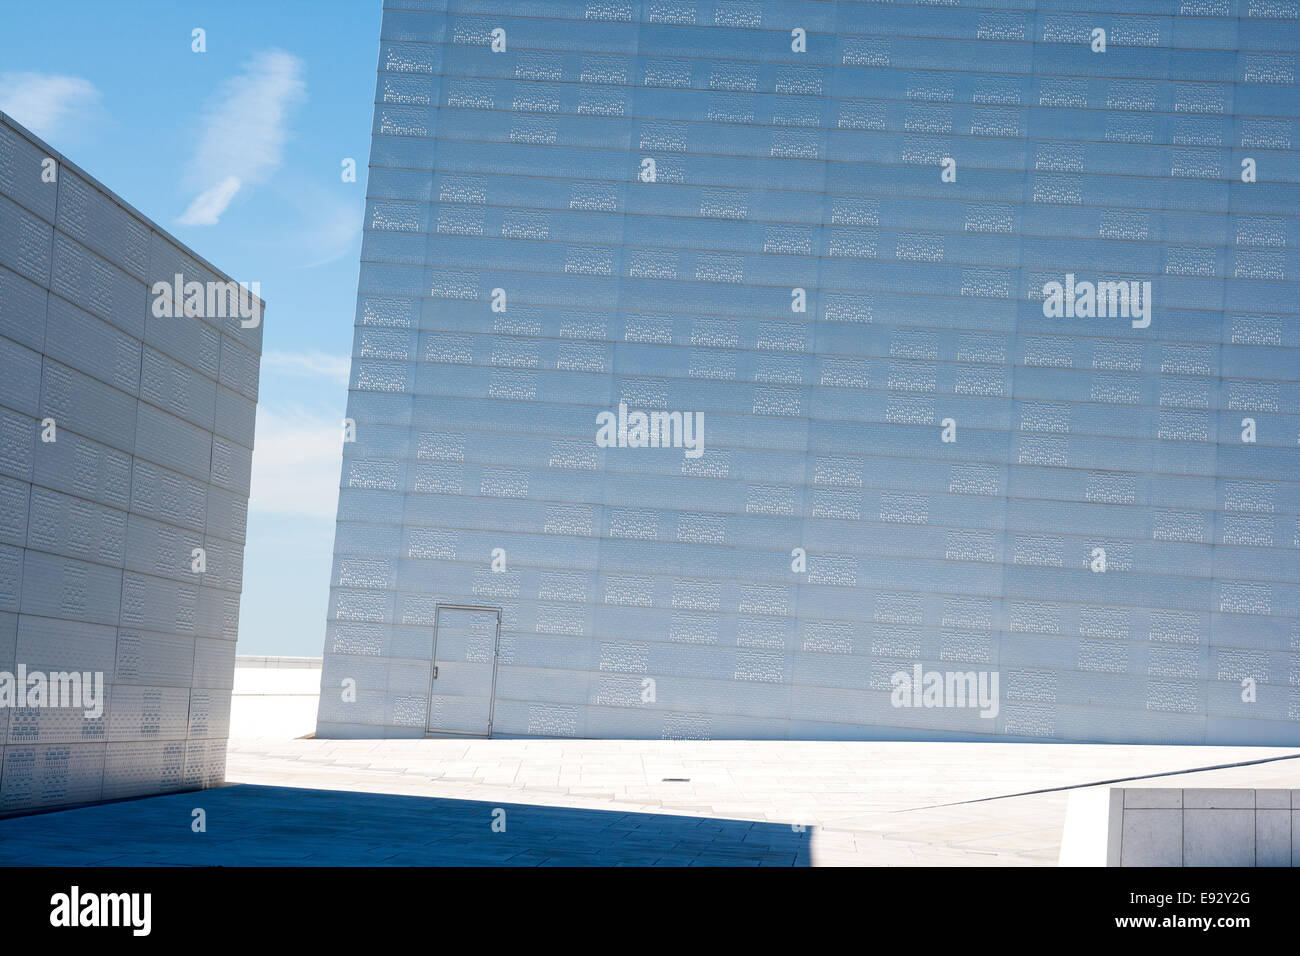 On the roof of the Oslo Opera House in Oslo, Norway. - Stock Image